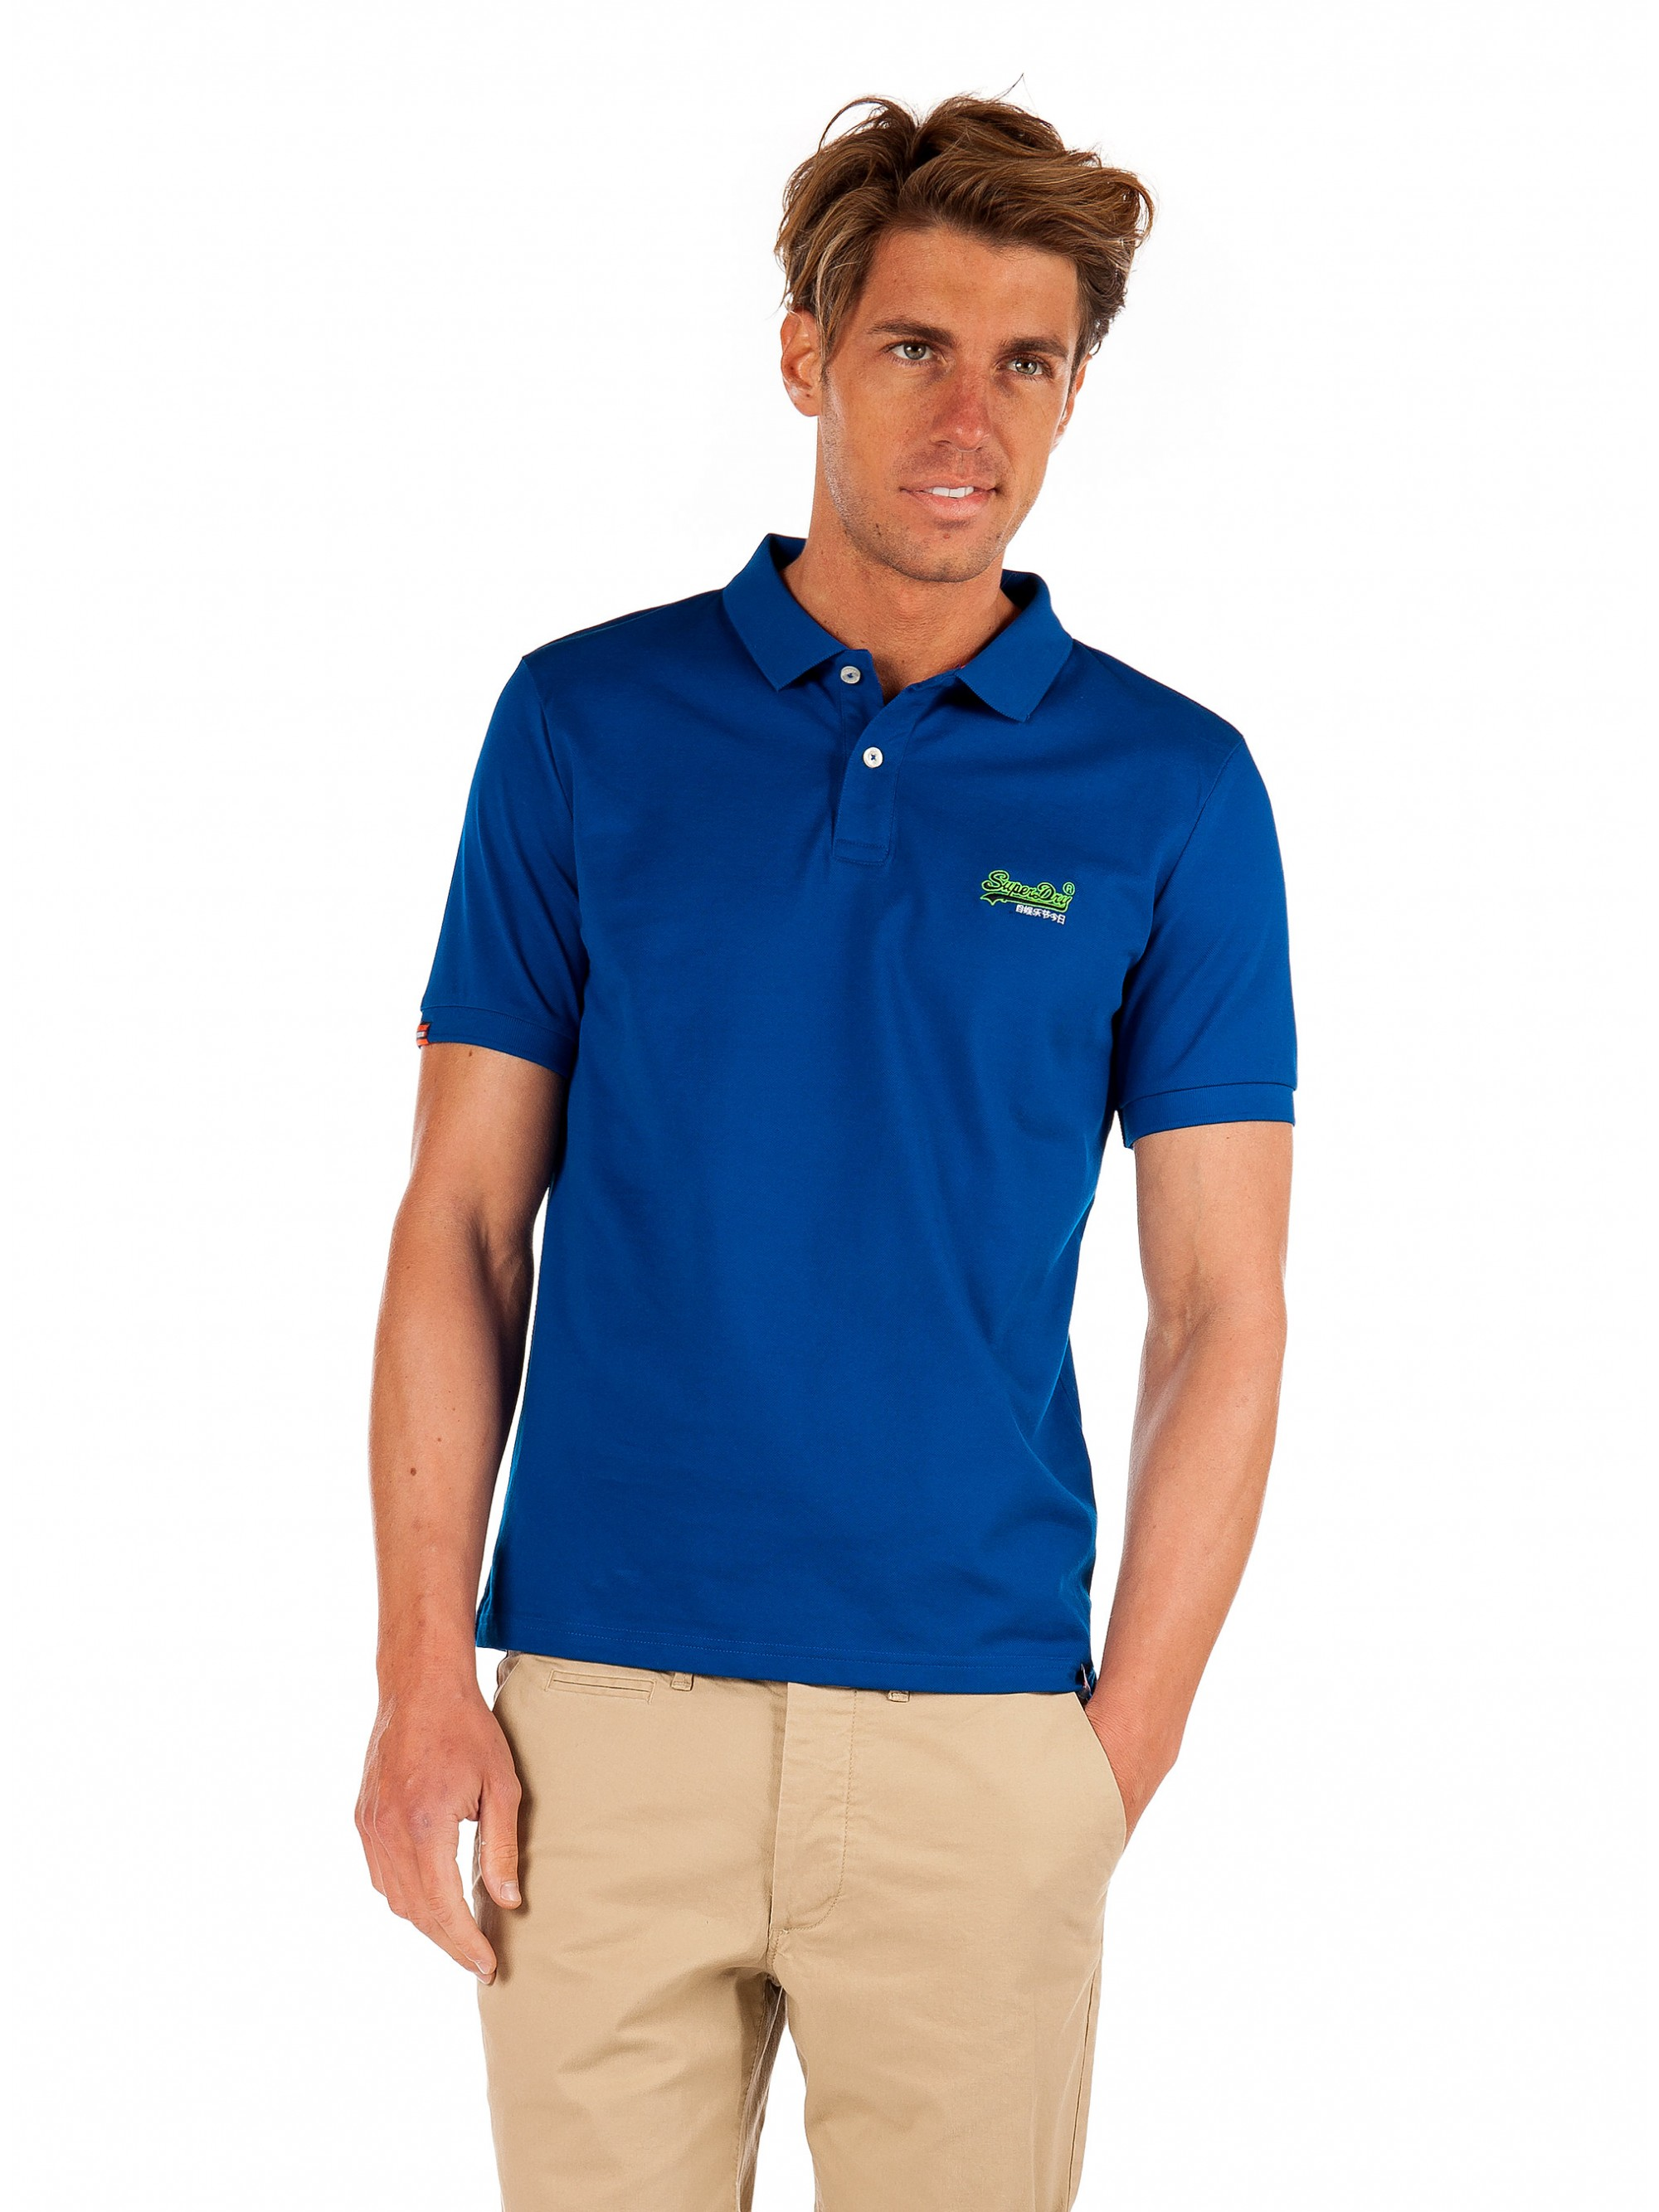 5f640f2633df Home; Superdry Mercerised Lite City Polo Shirt-Royal Blue. Tap to expand